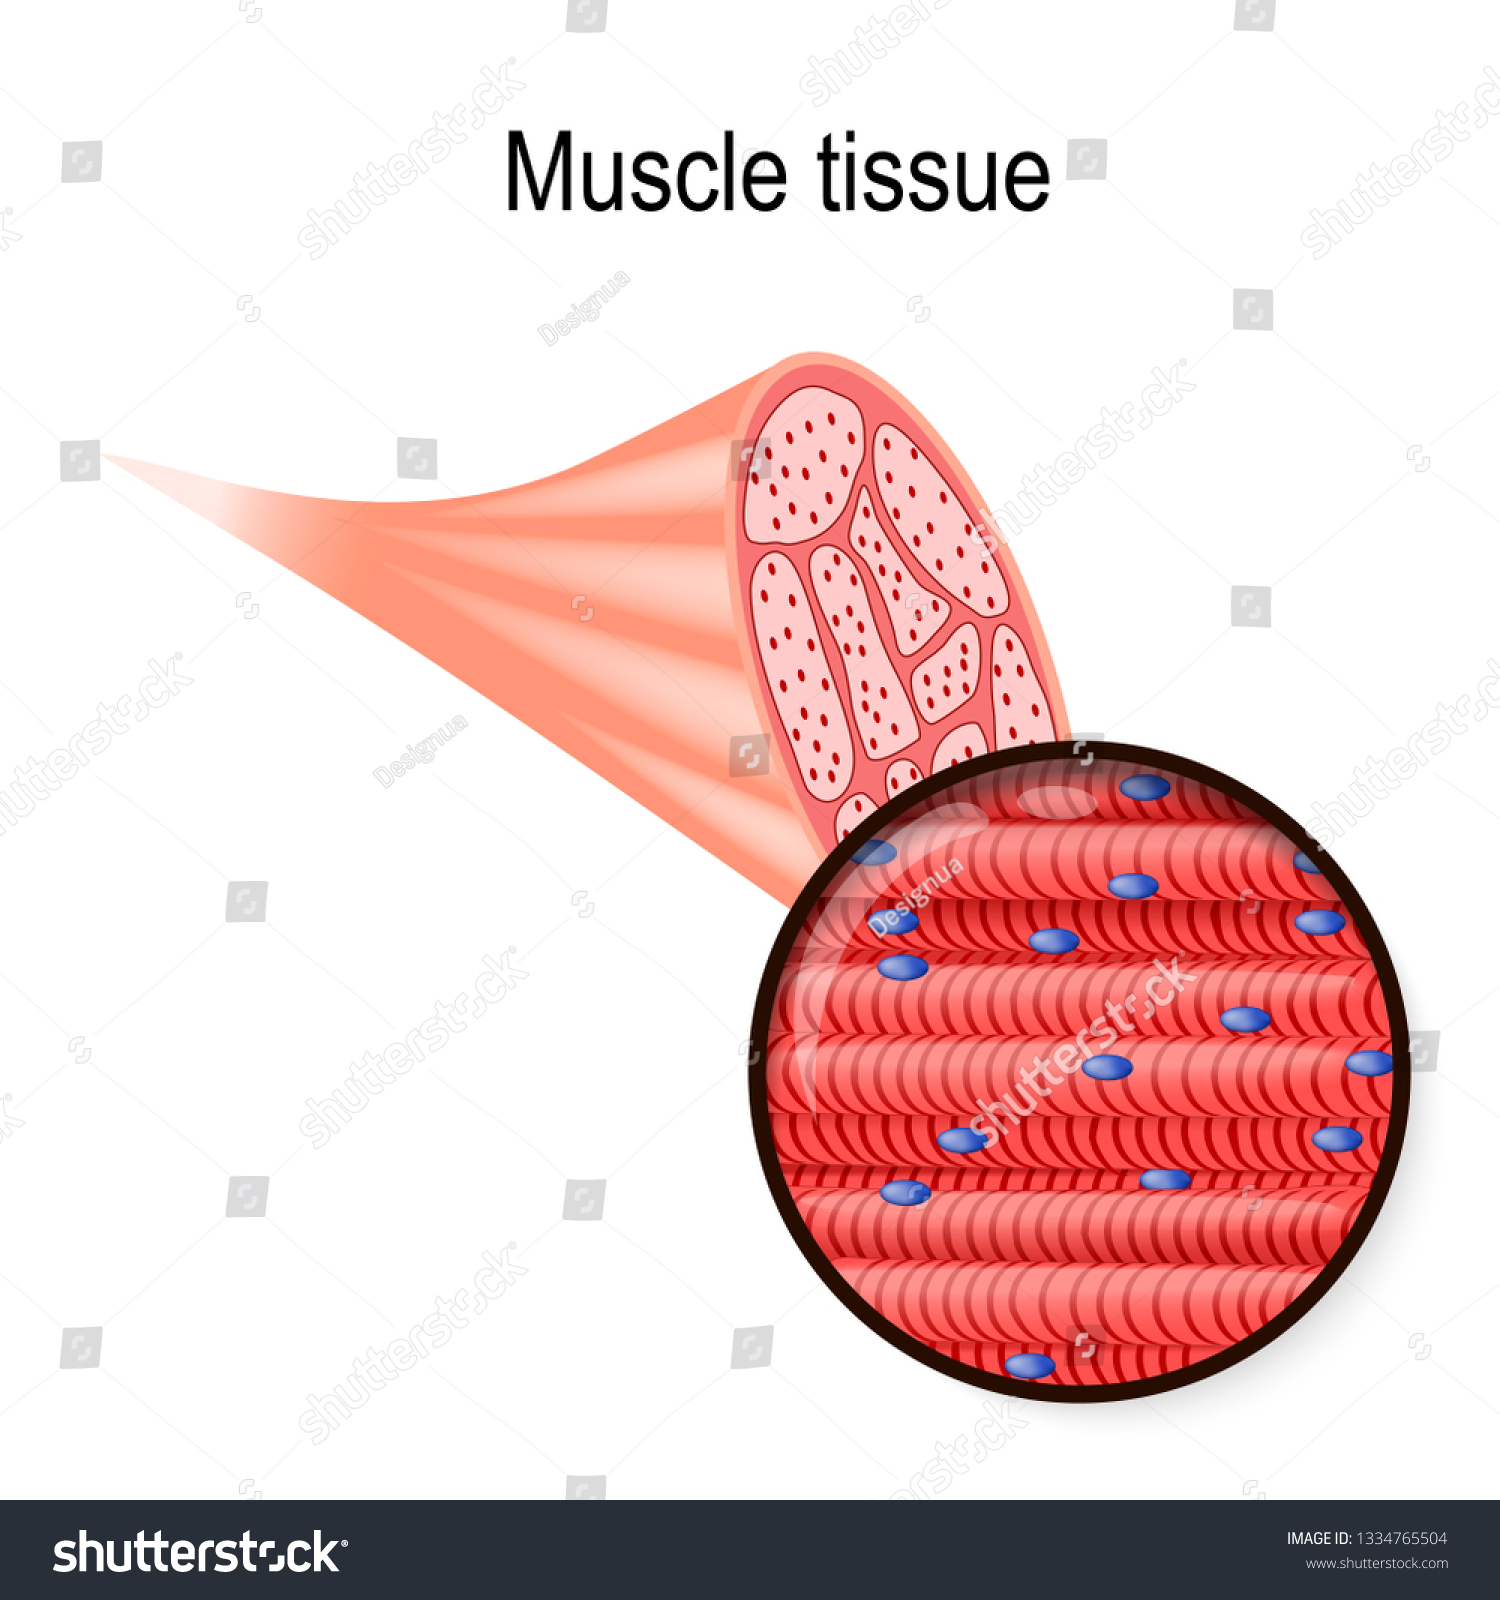 hight resolution of skeletal muscle tissue and fiber part of the biceps and close up of muscle fibers vector illustration for biological medical science and educational